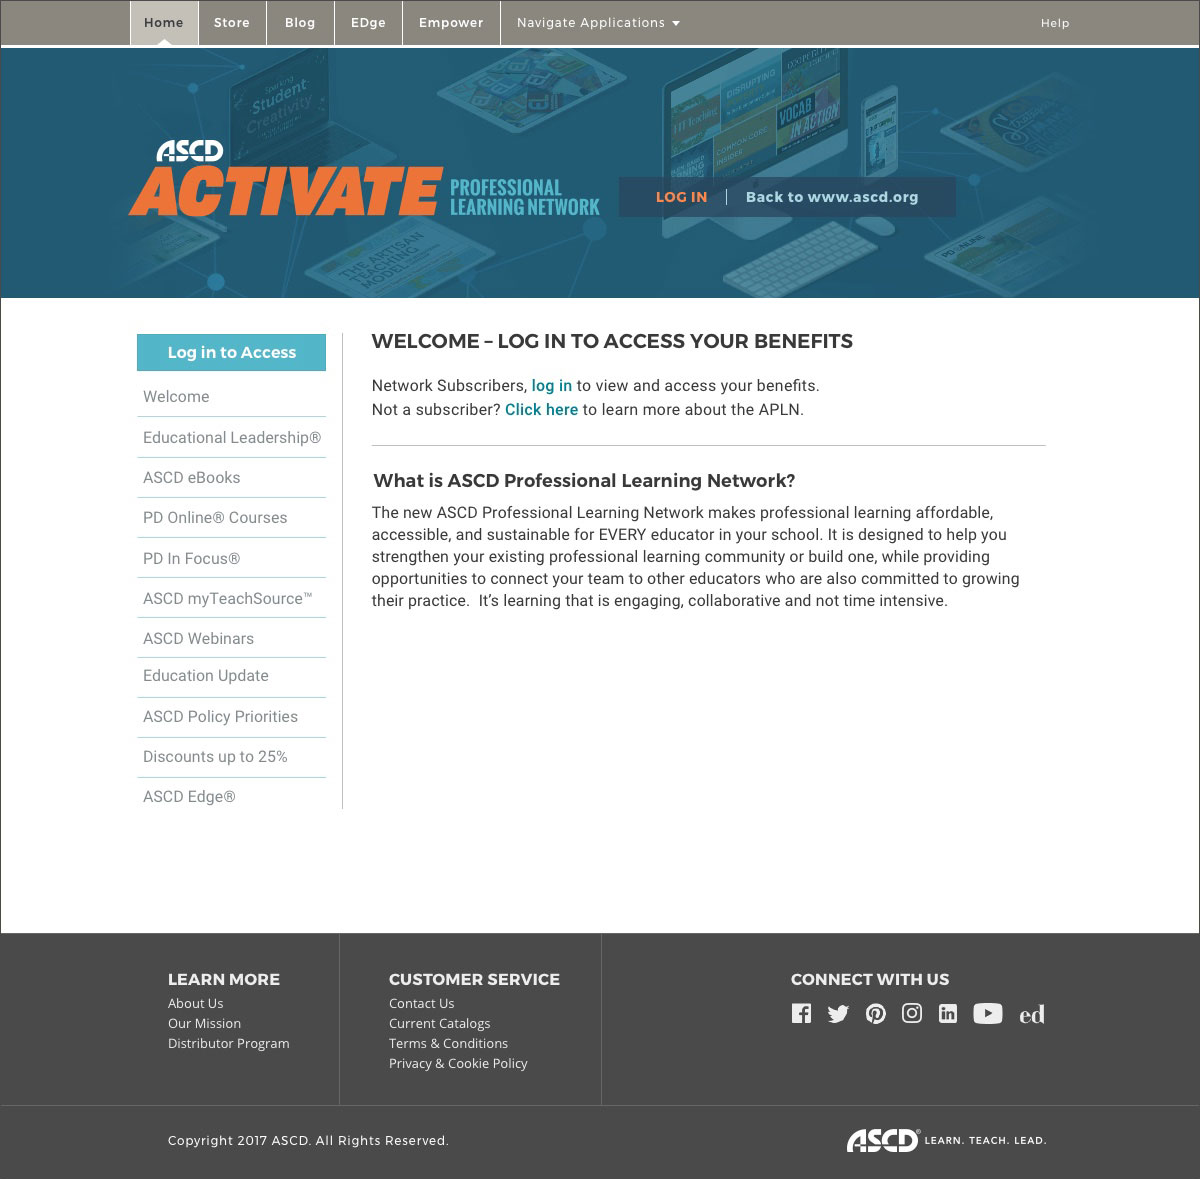 ascd-activate-welcome-loggedout.jpg